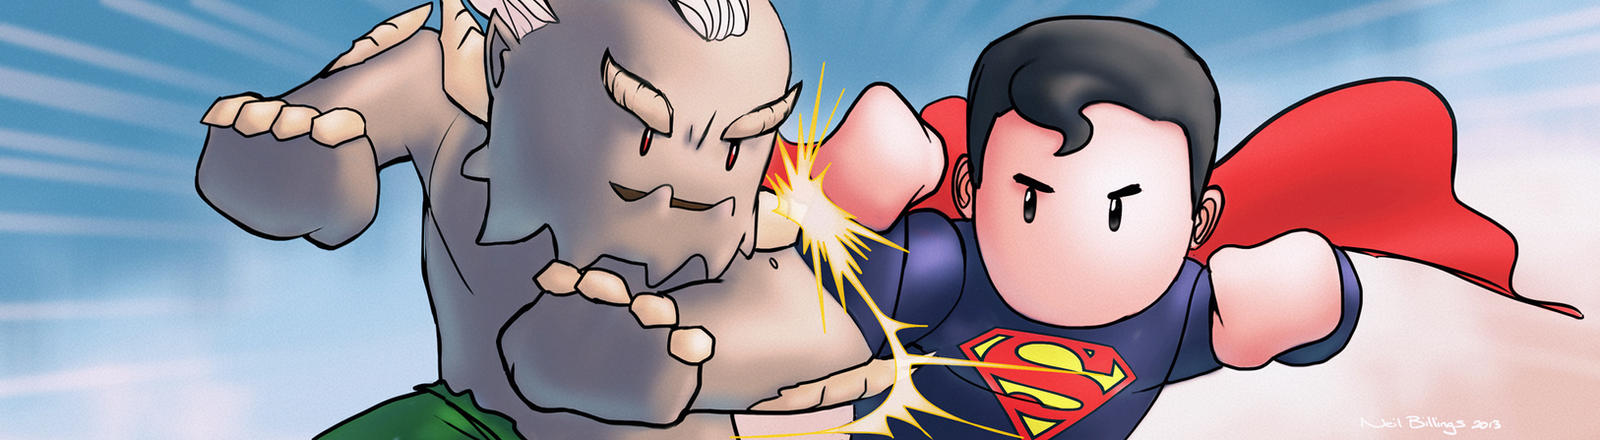 Superman vs Doomsday by Bladien